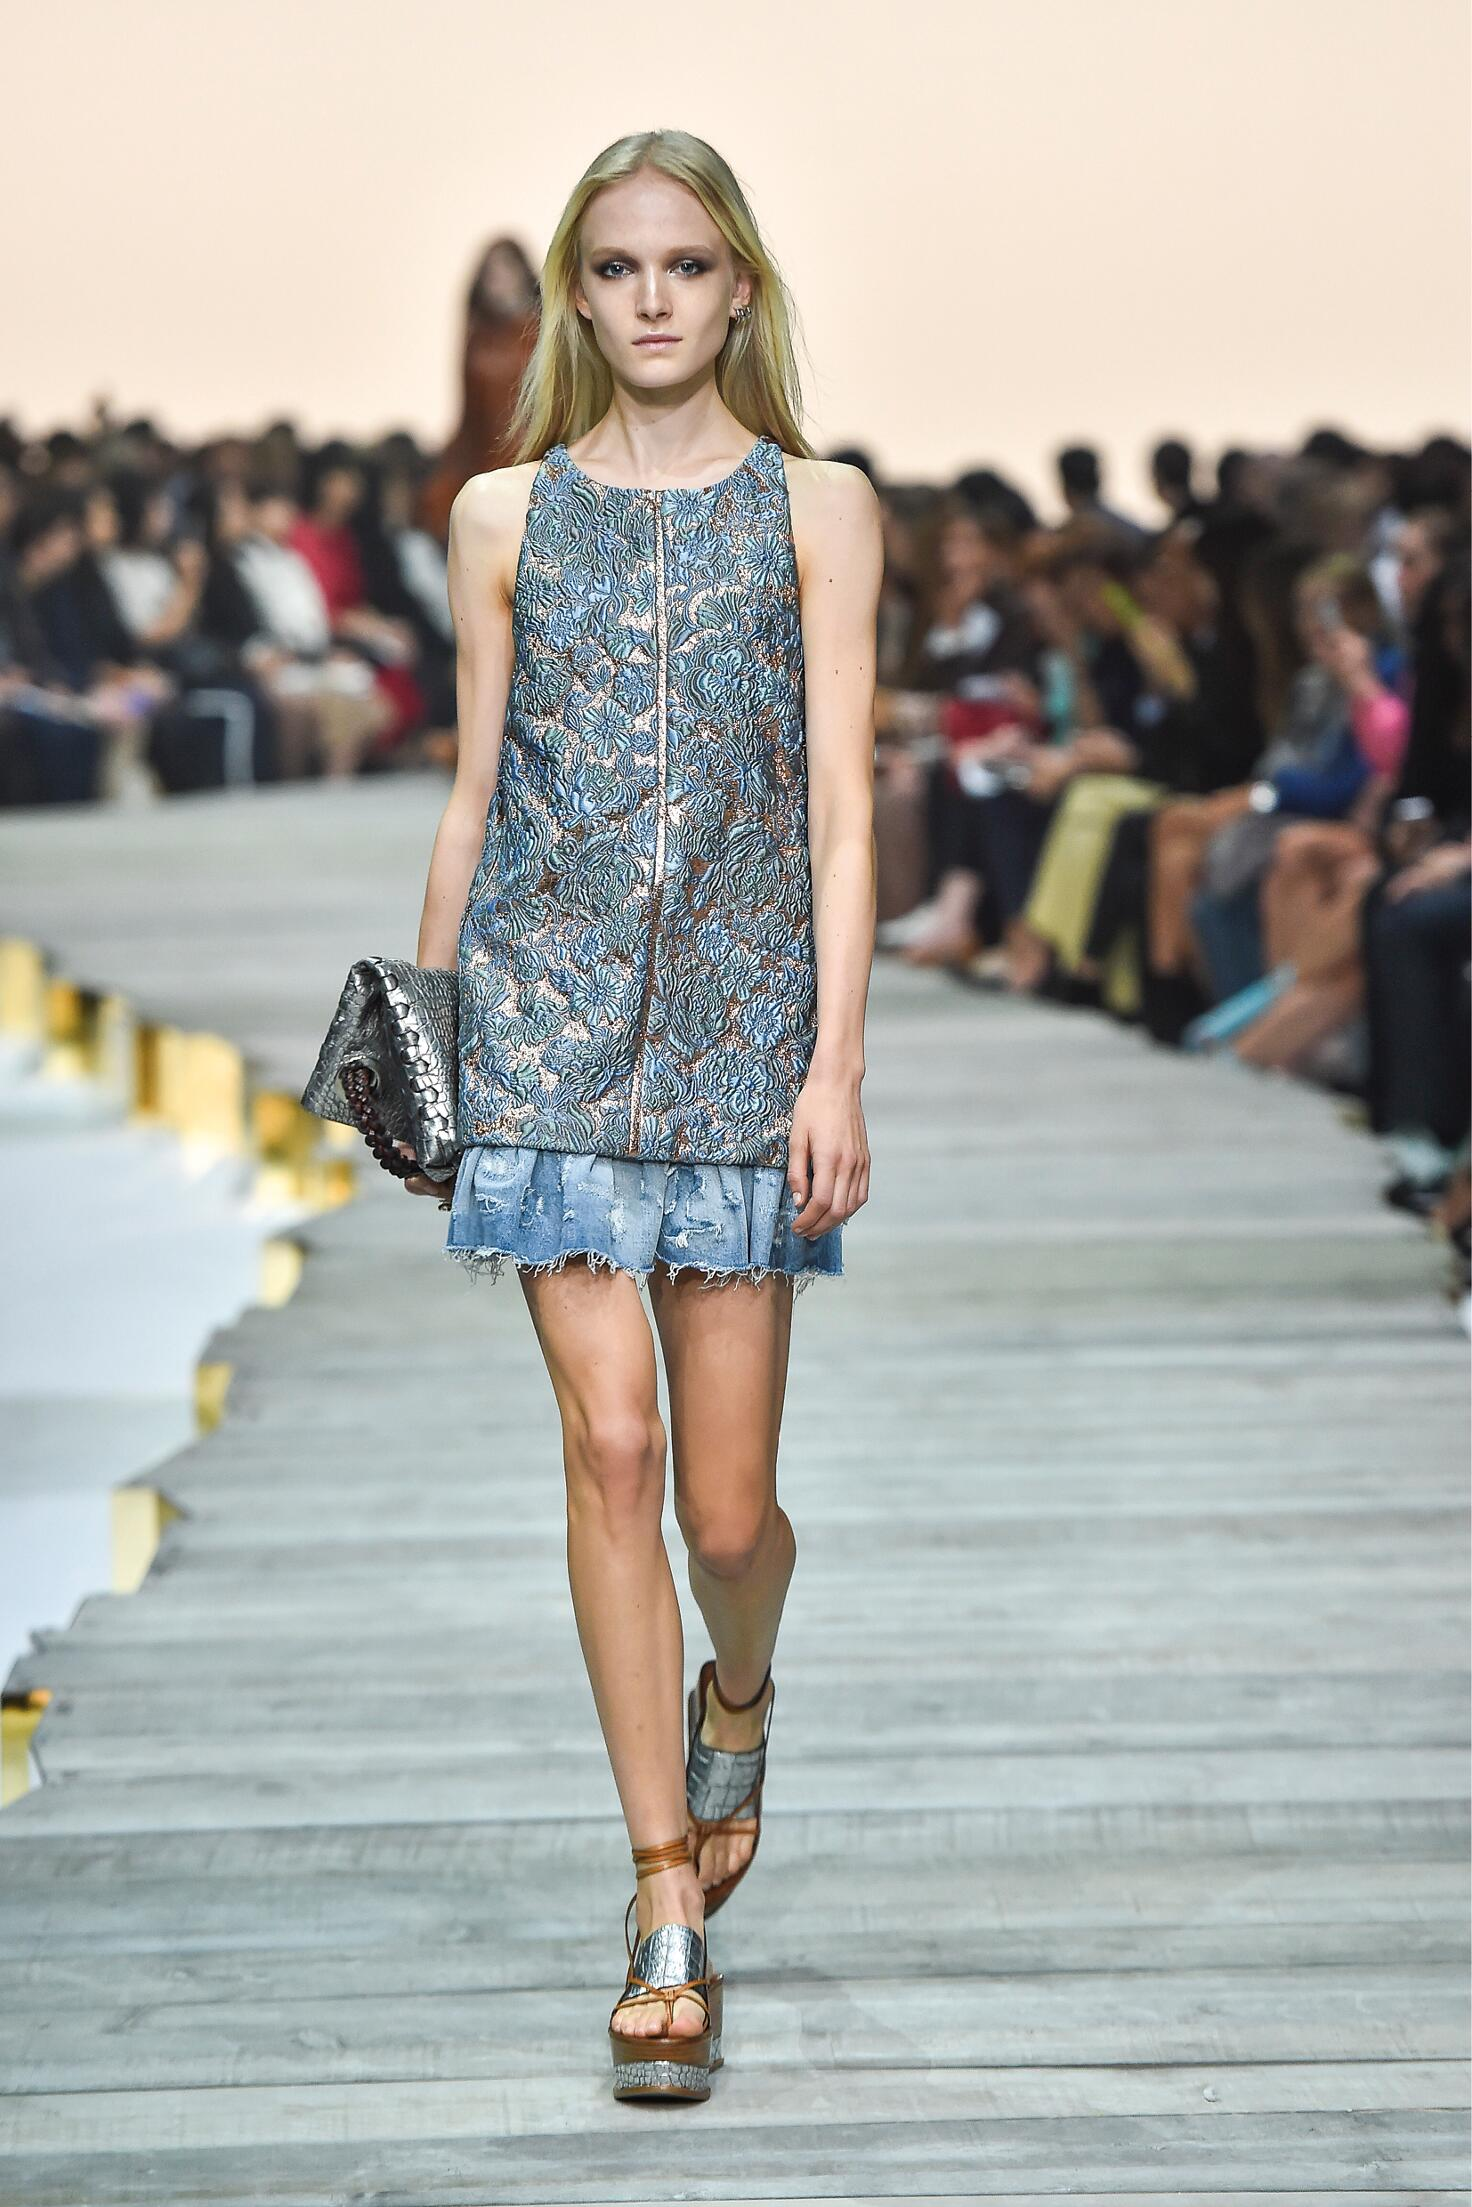 Catwalk Roberto Cavalli Woman Fashion Show Summer 2015